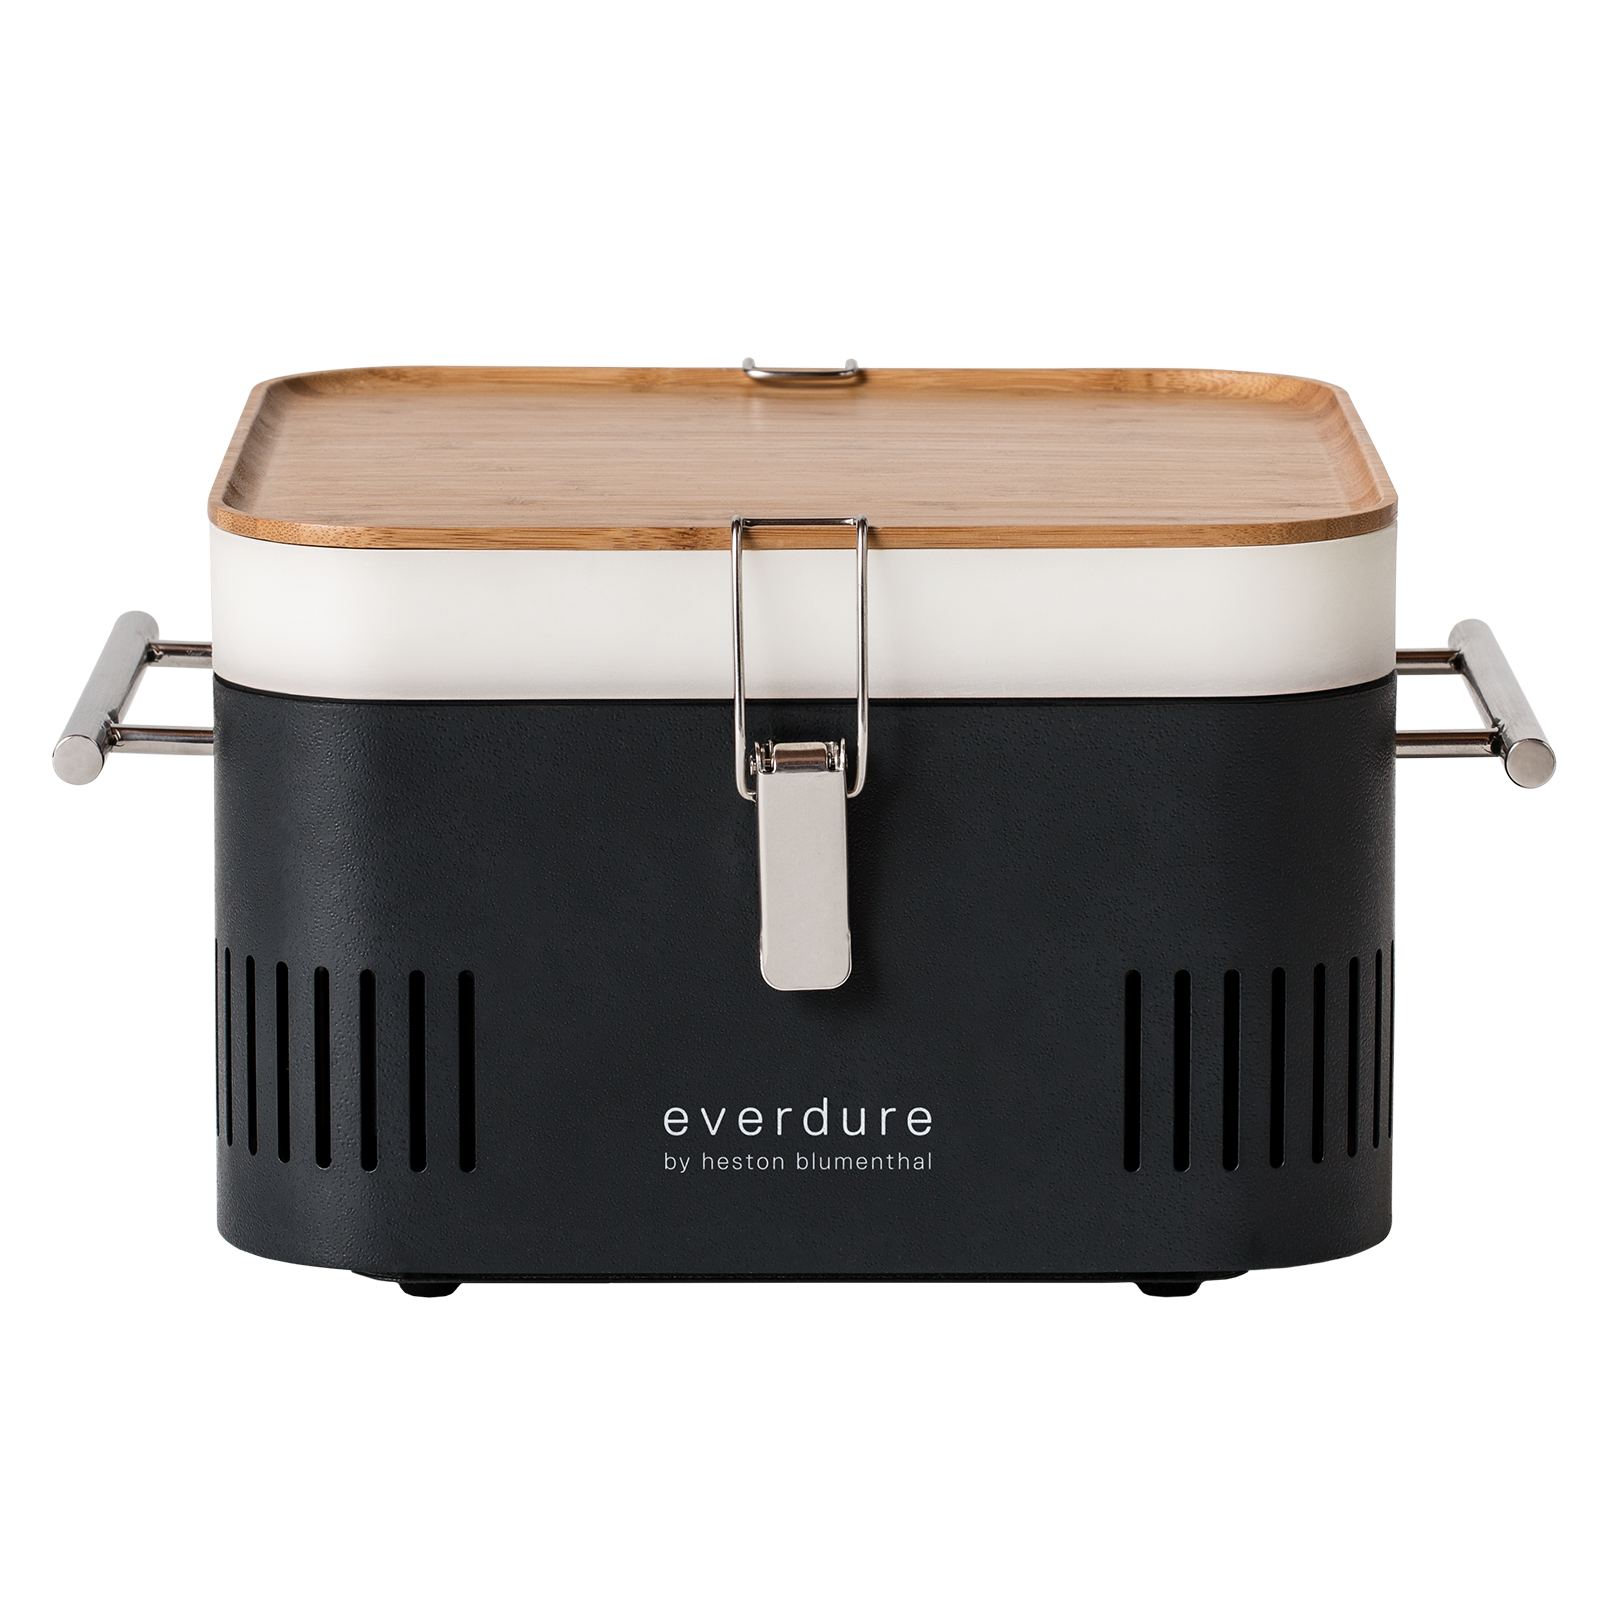 Everdure by Heston Blumenthal CUBE Portable Charcoal Barbeque - Graphite